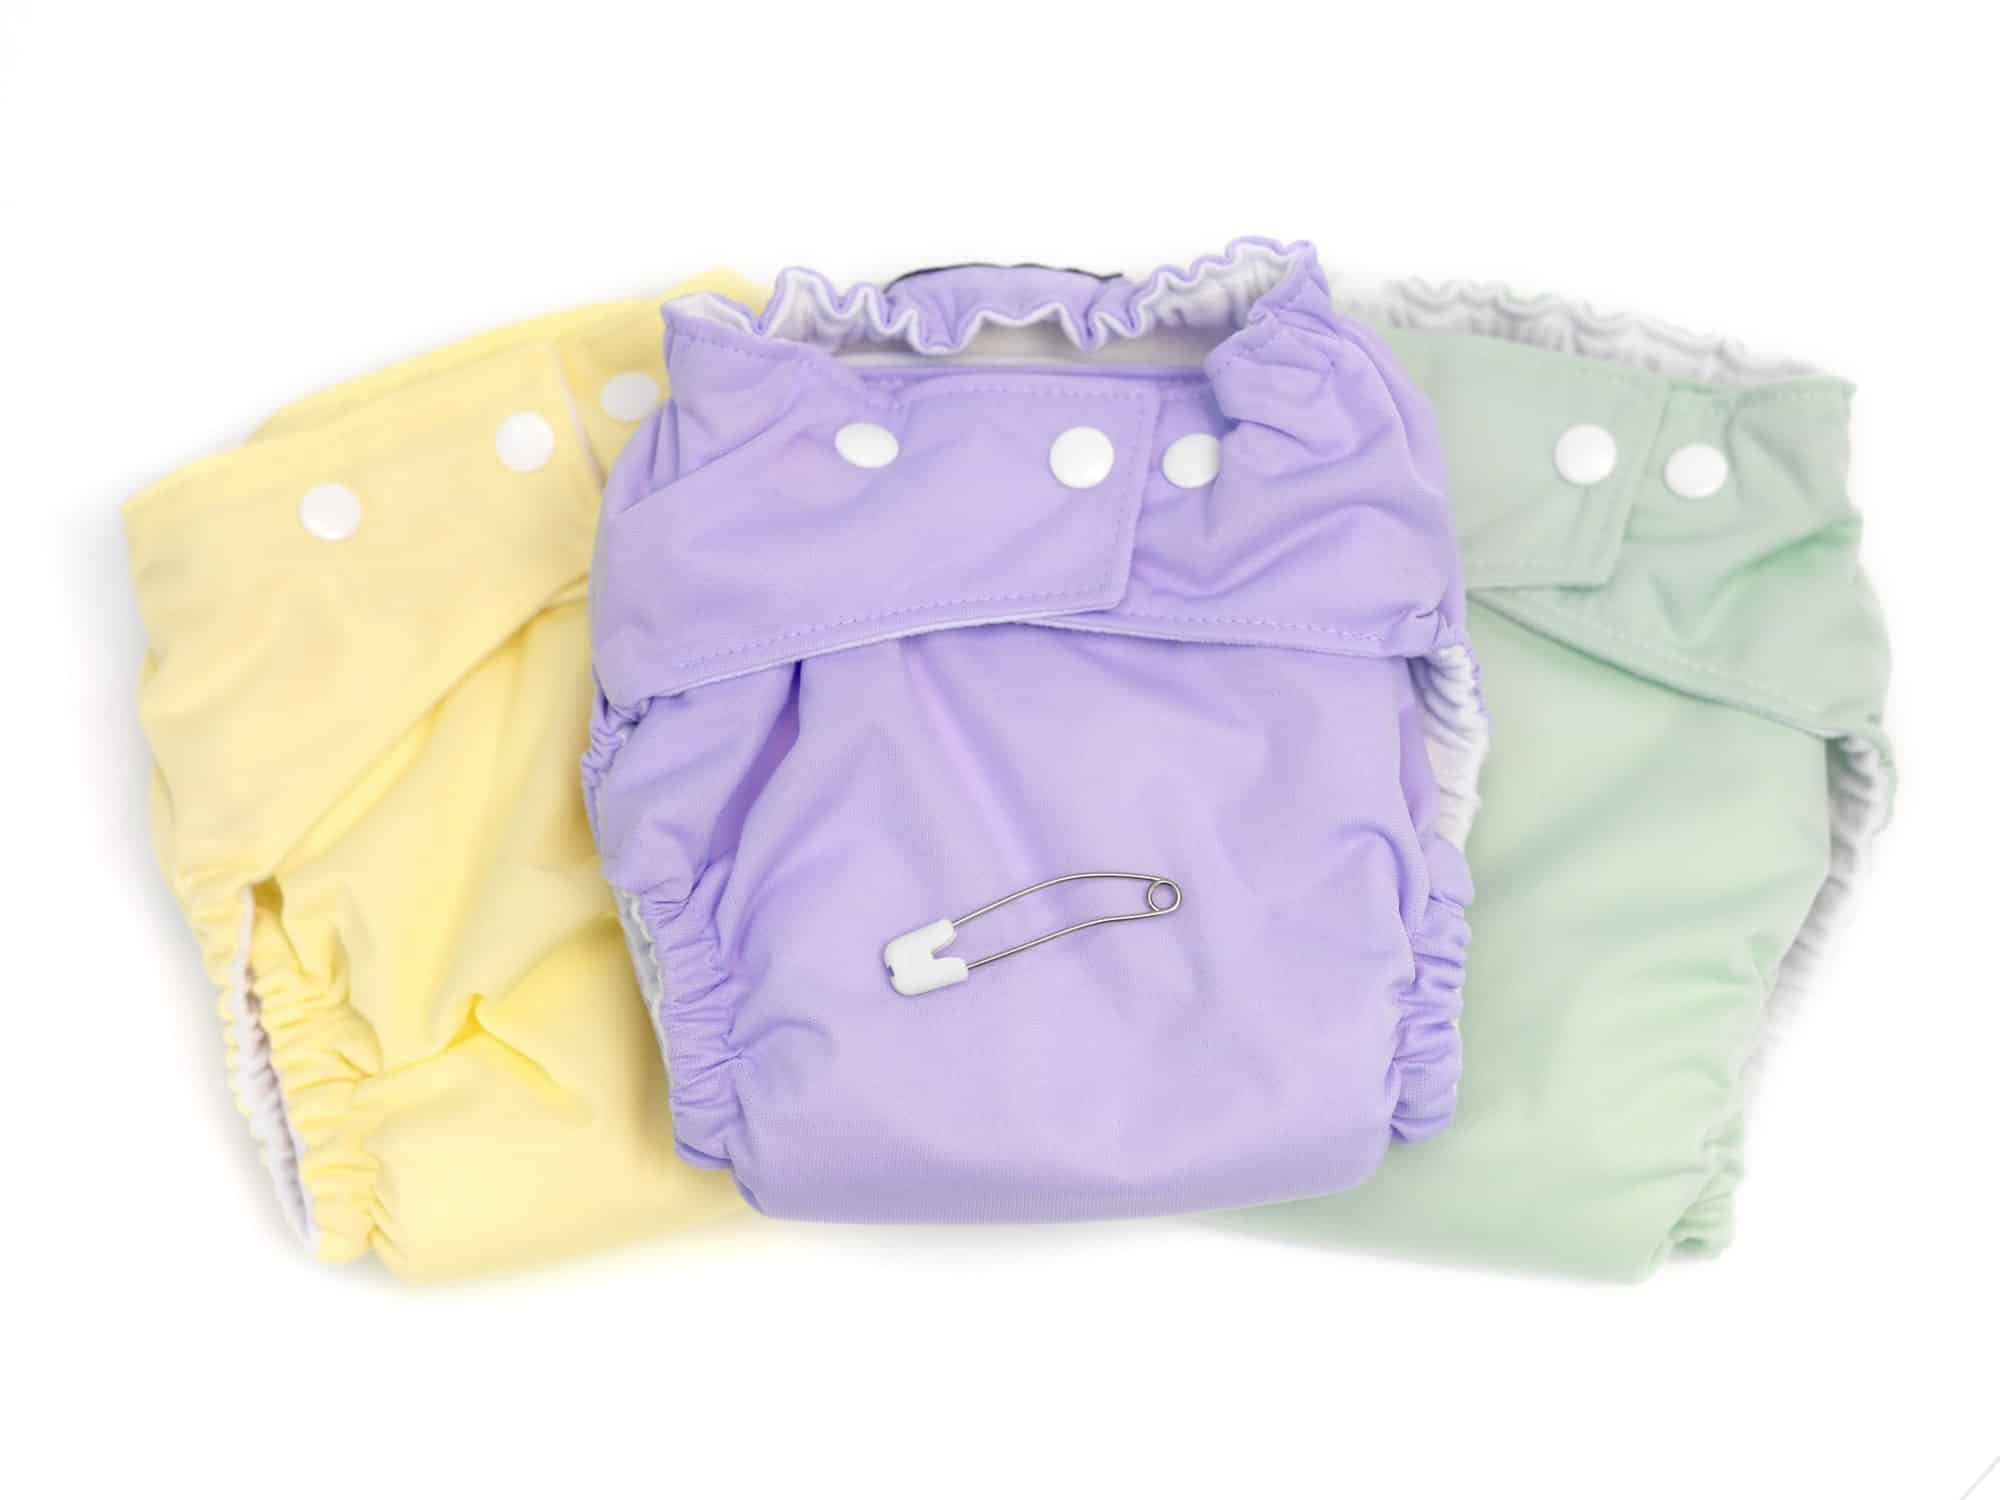 24 NEW FITTED CLOTH BABY NAPPIES 100/%COTTON-LARGE SIZE